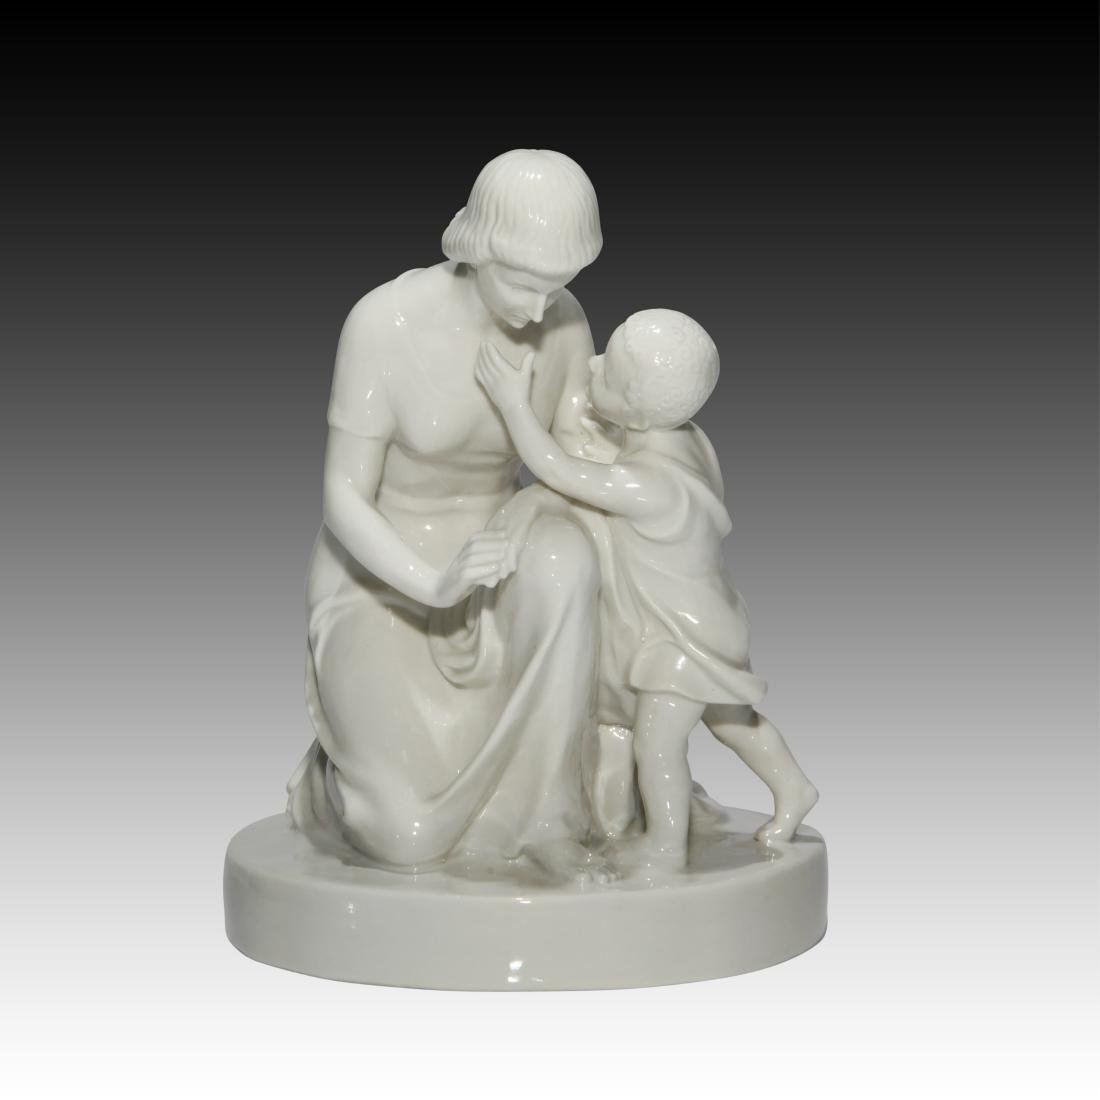 Schwarzburger Young Woman and Child Figurine